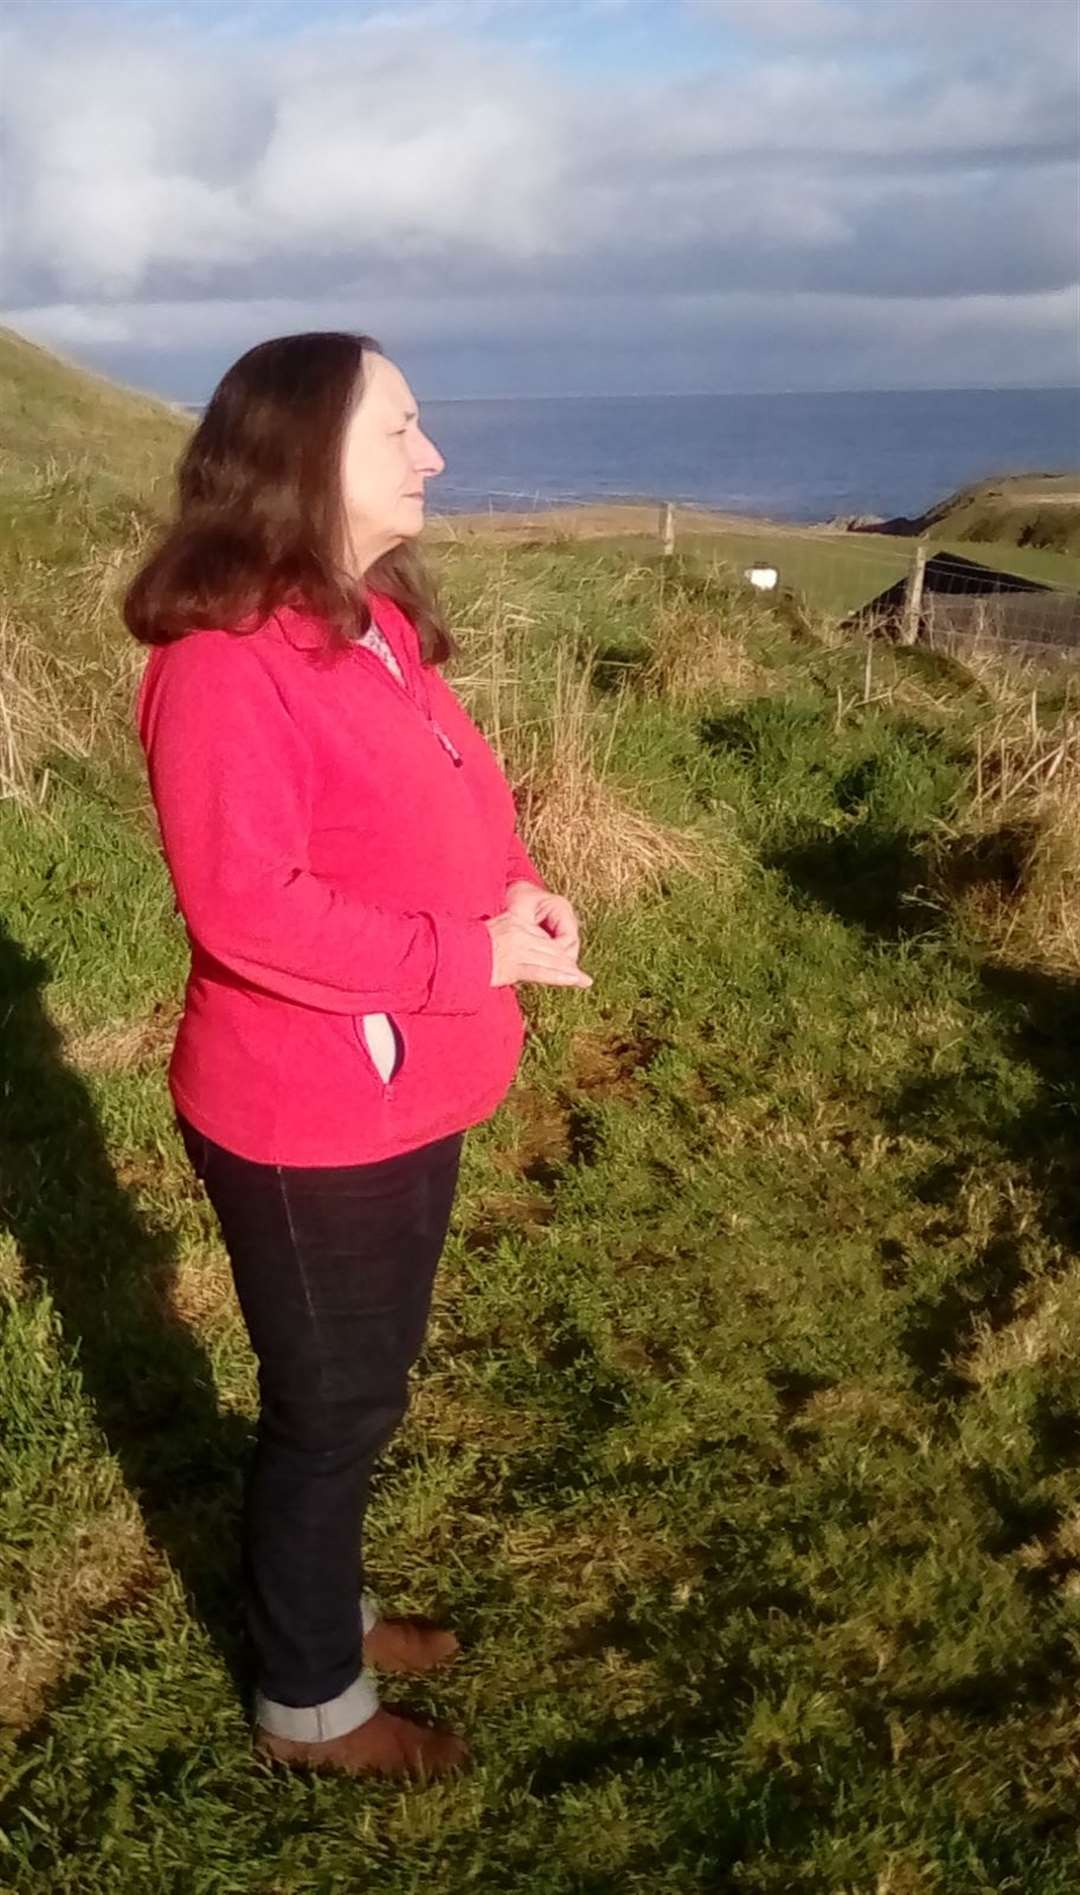 Cheryl McDonald is the Scottish Labour Party candidate for the seat of Caithness, Sutherland and Easter Ross.